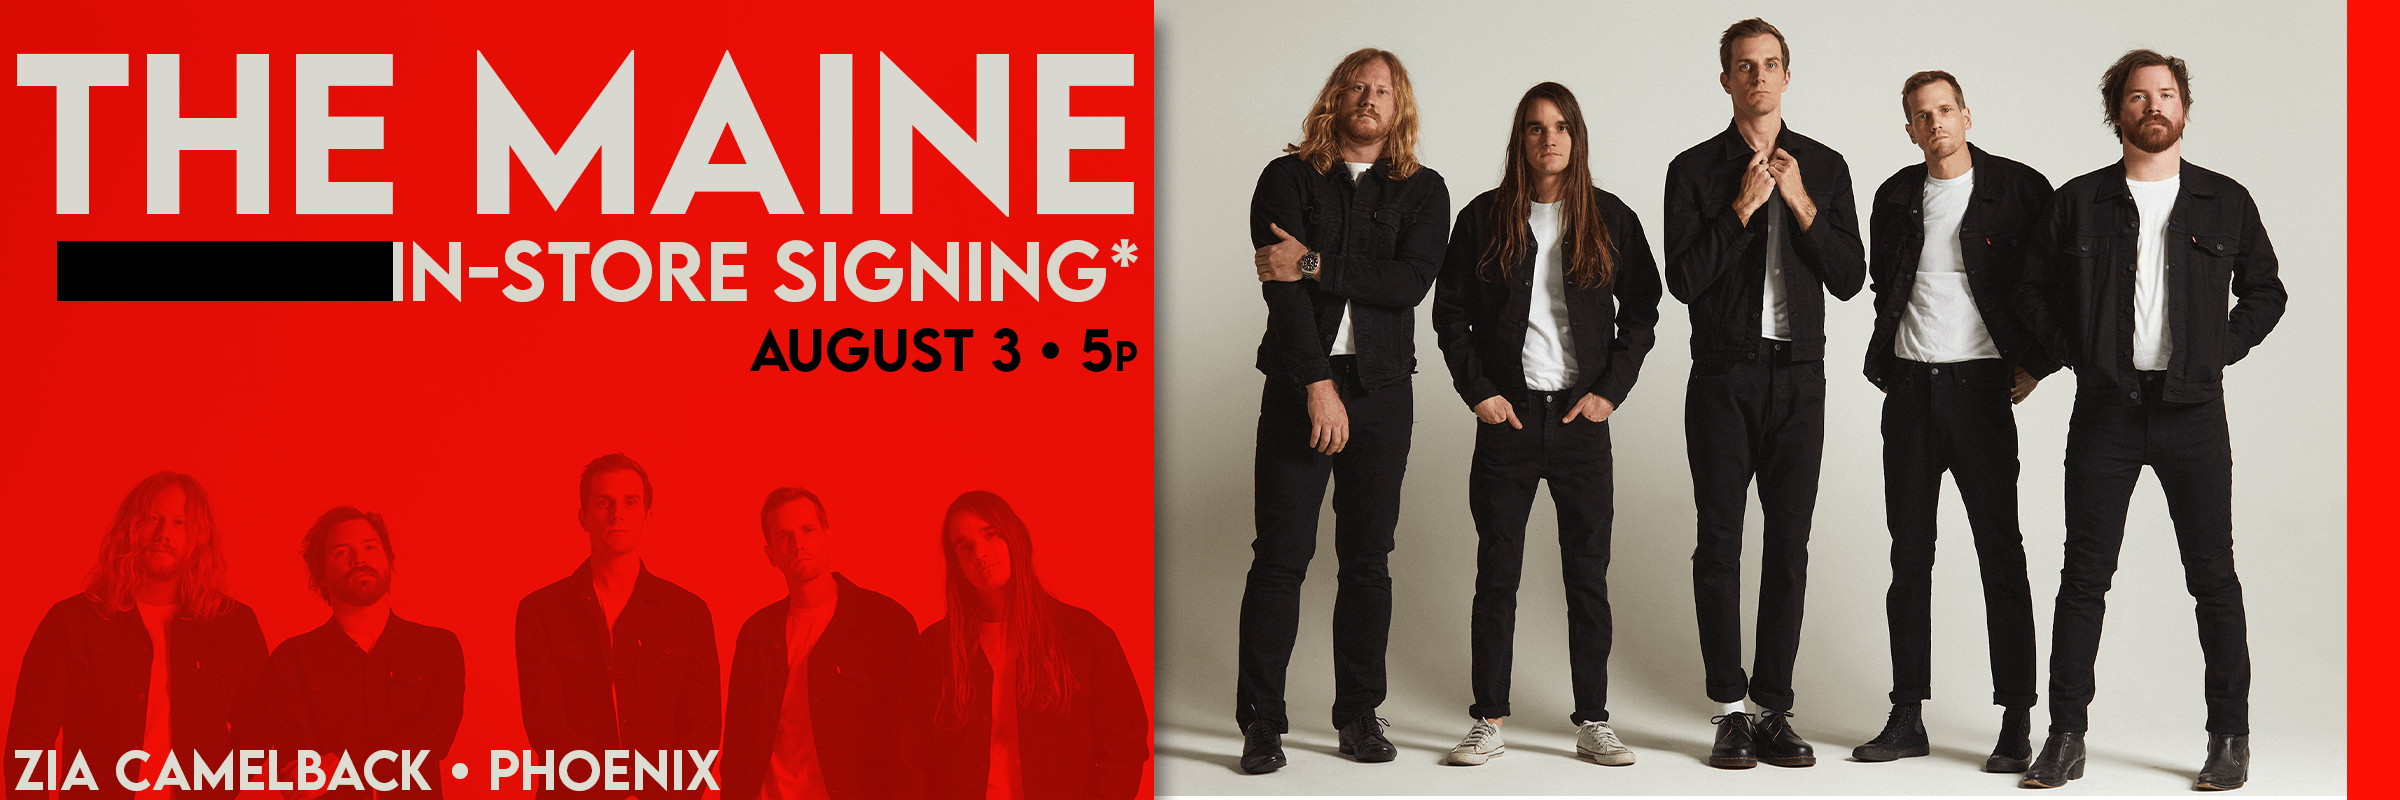 The Maine In-Store Signing